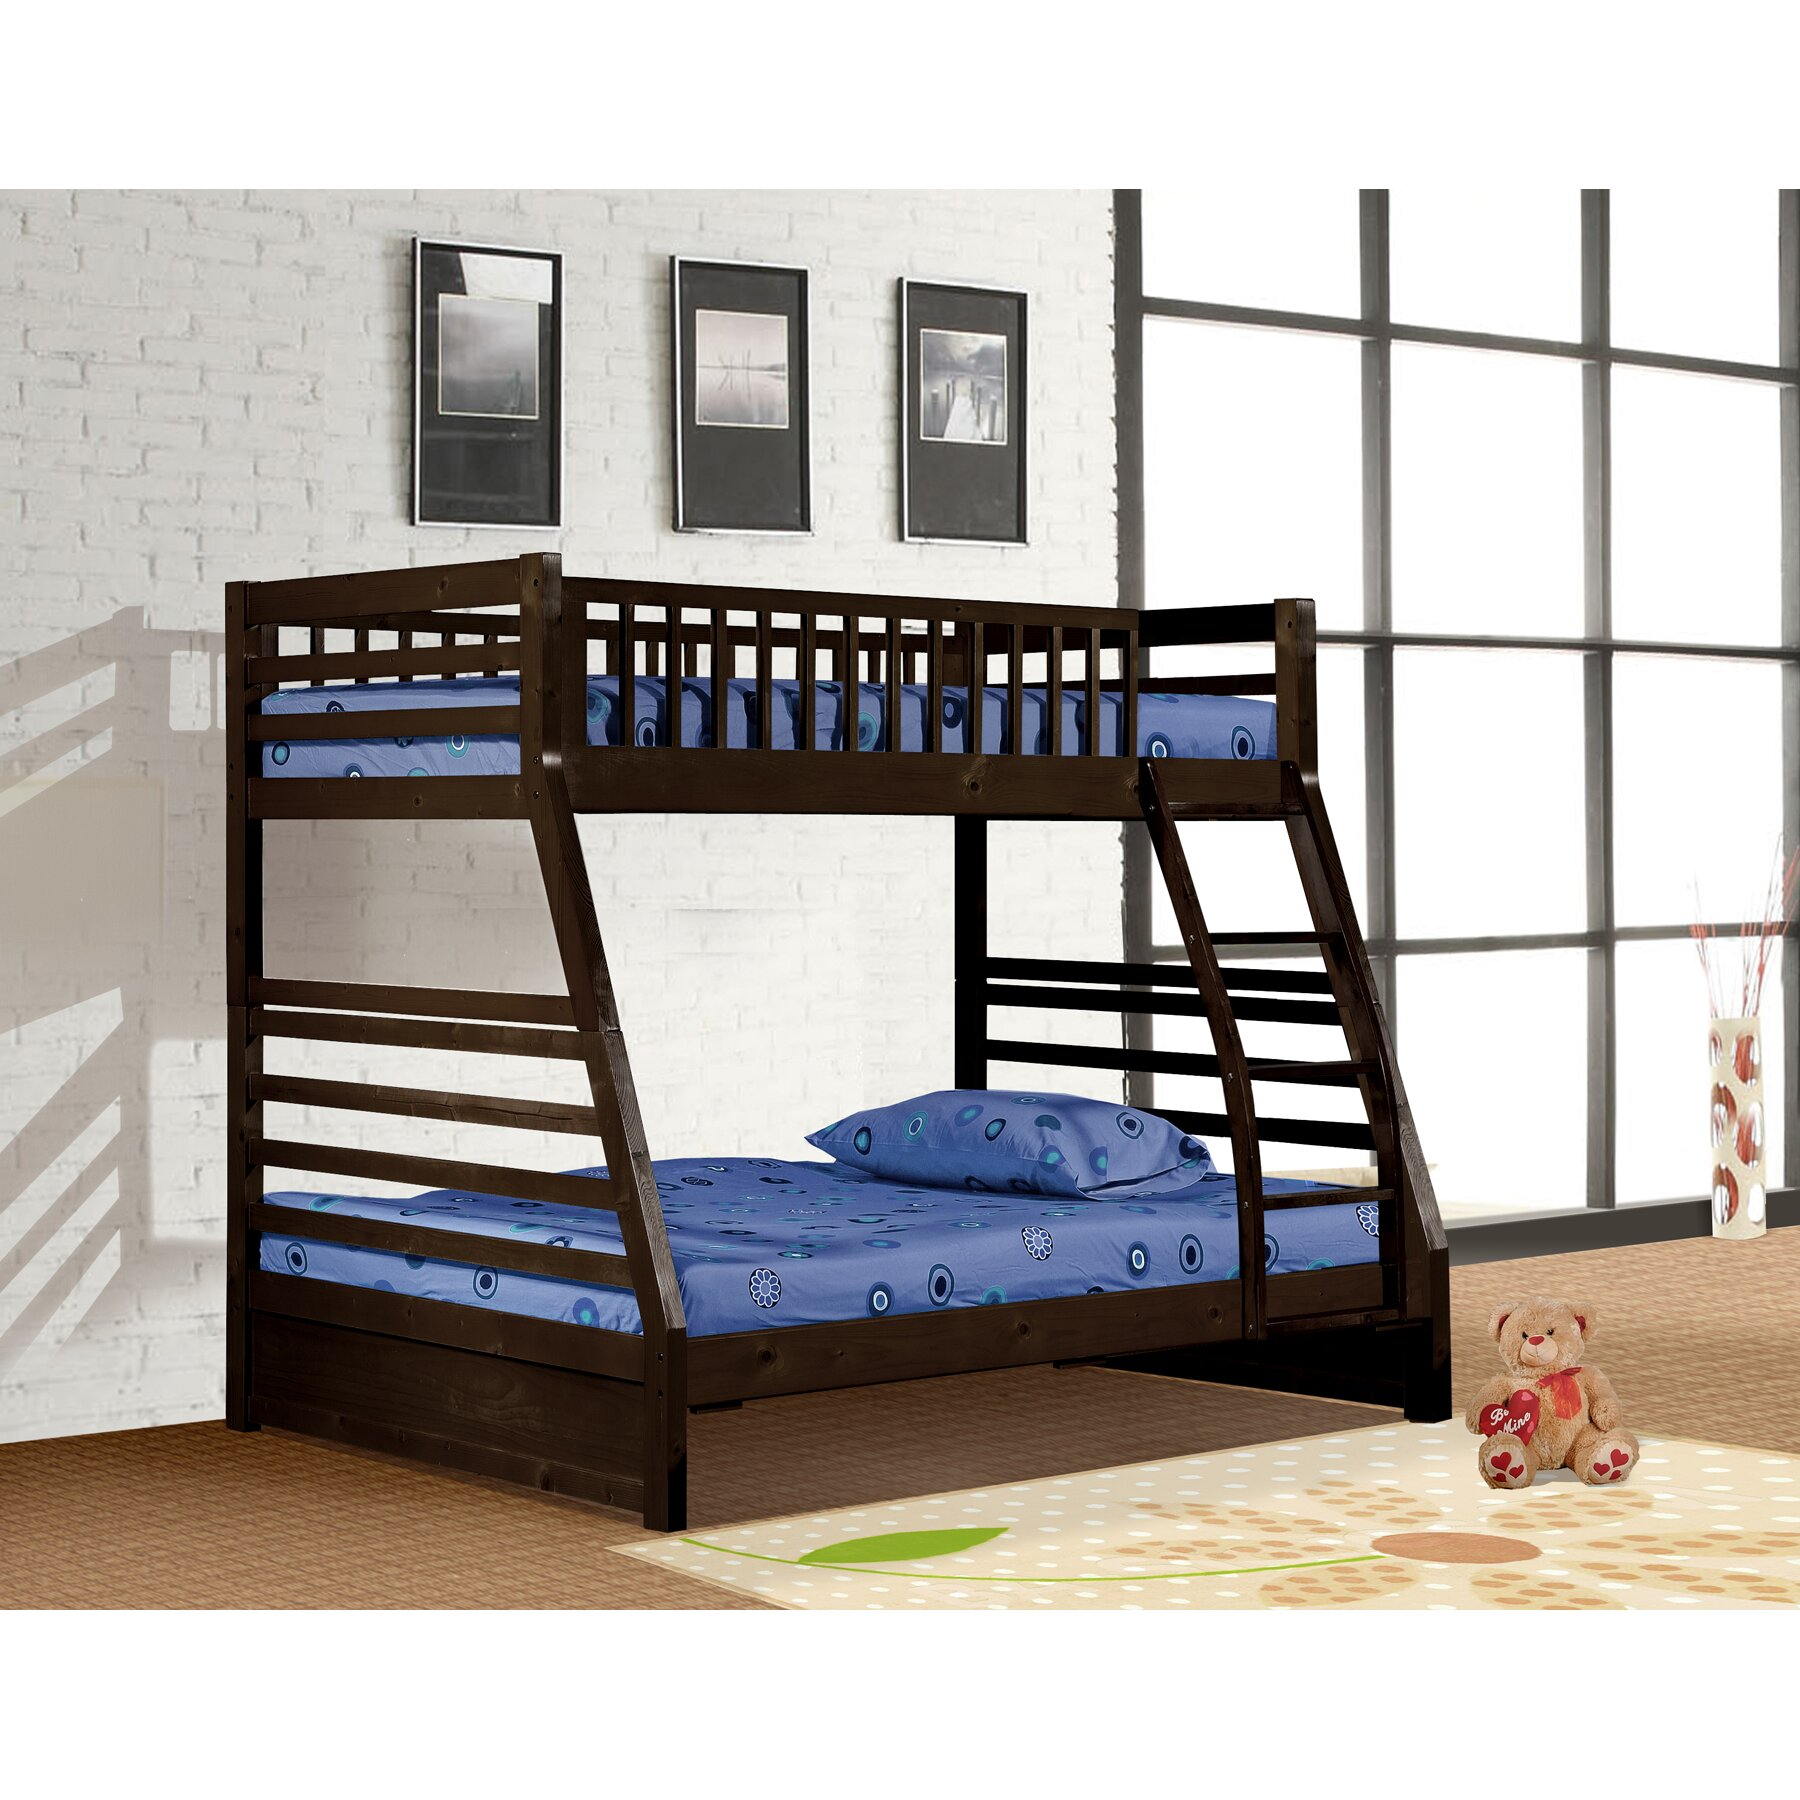 wildon home dakota twin over full bunk bed reviews wayfair. Black Bedroom Furniture Sets. Home Design Ideas